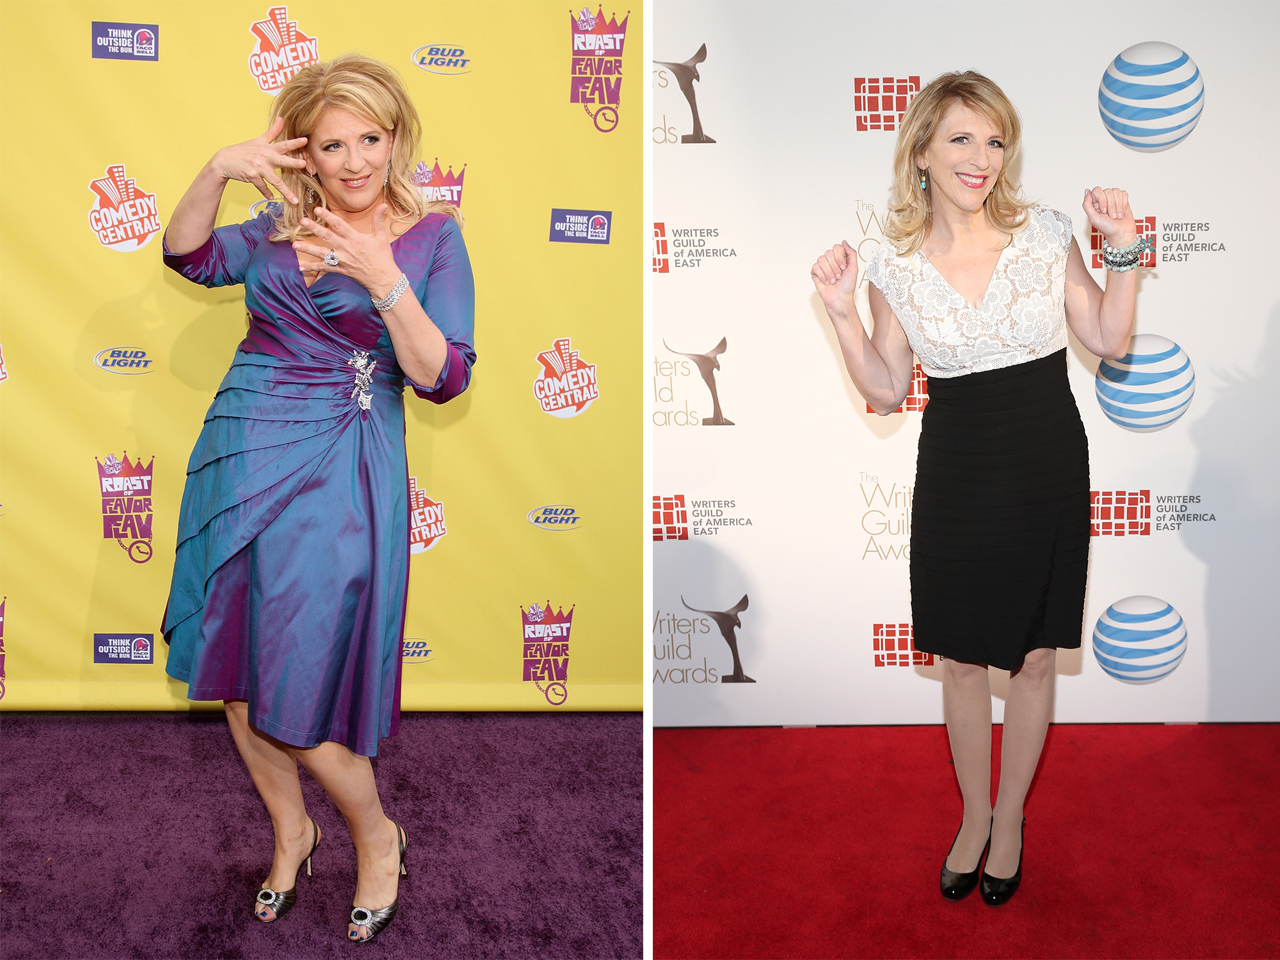 Lisa Lampanelli Drops Over 100 Pounds With Weight Loss Surgery